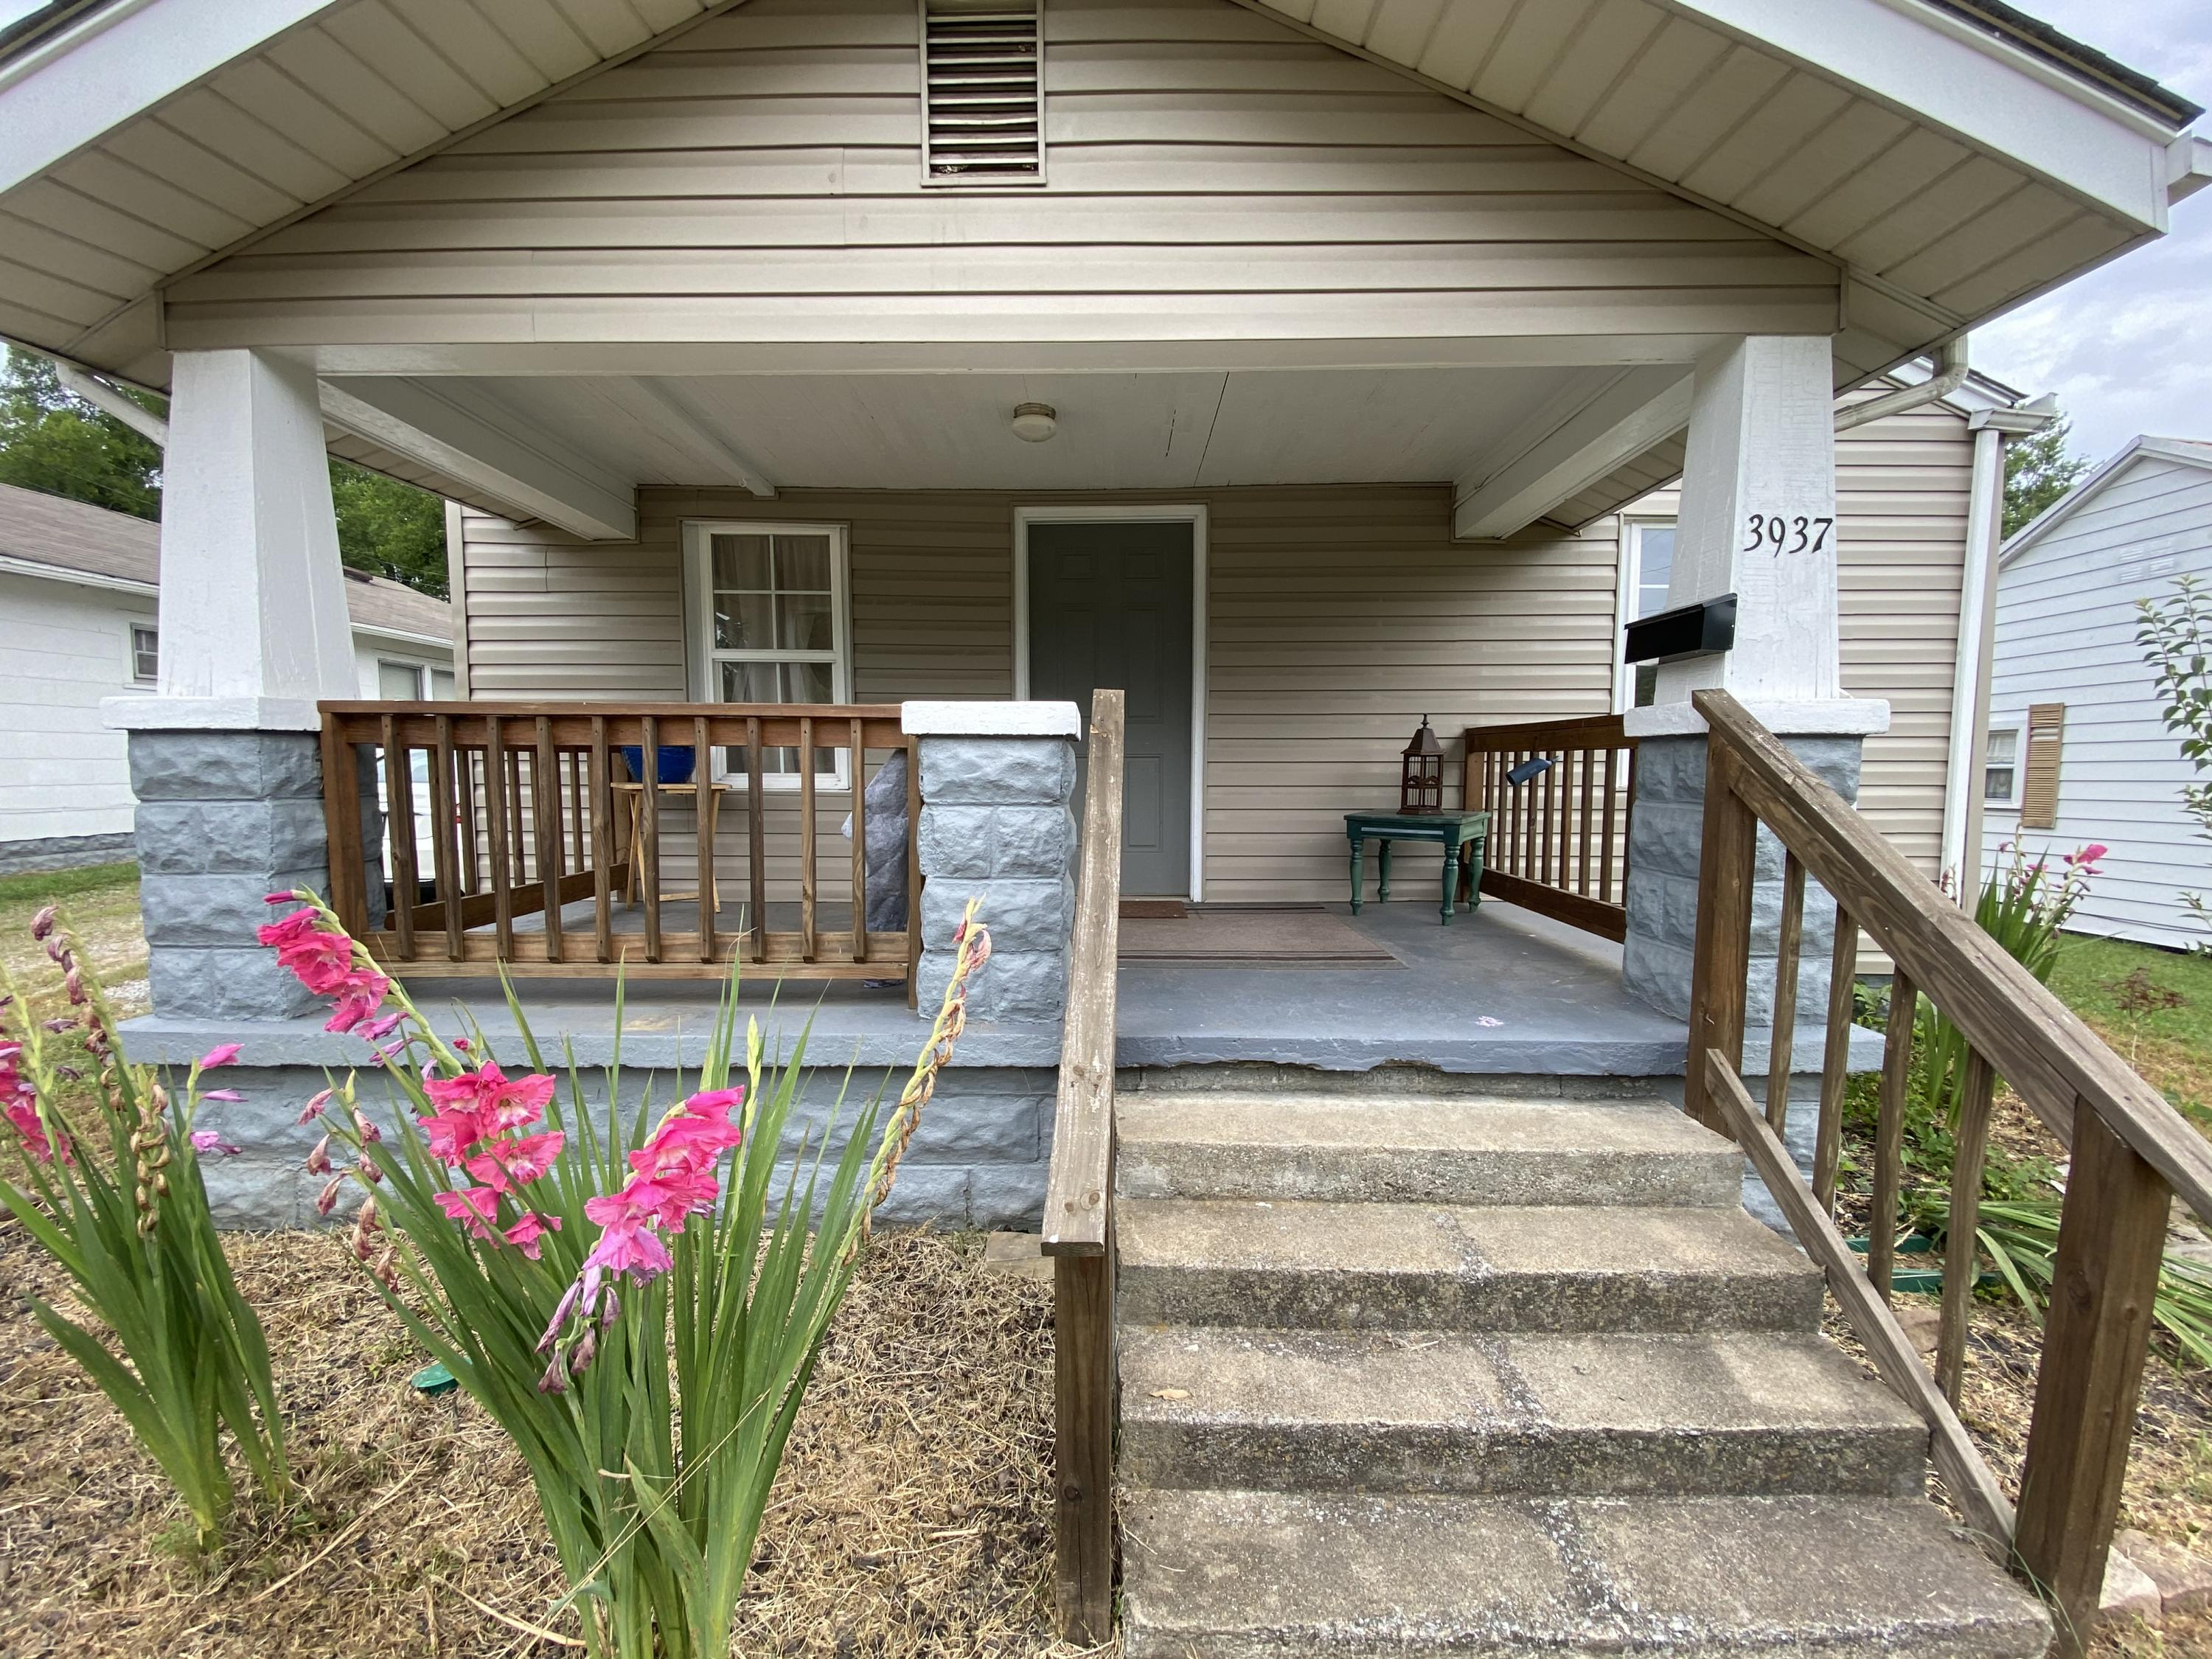 3937 Porter Ave, Knoxville, Tennessee 37914, 2 Bedrooms Bedrooms, ,1 BathroomBathrooms,Single Family,For Sale,Porter,1122269